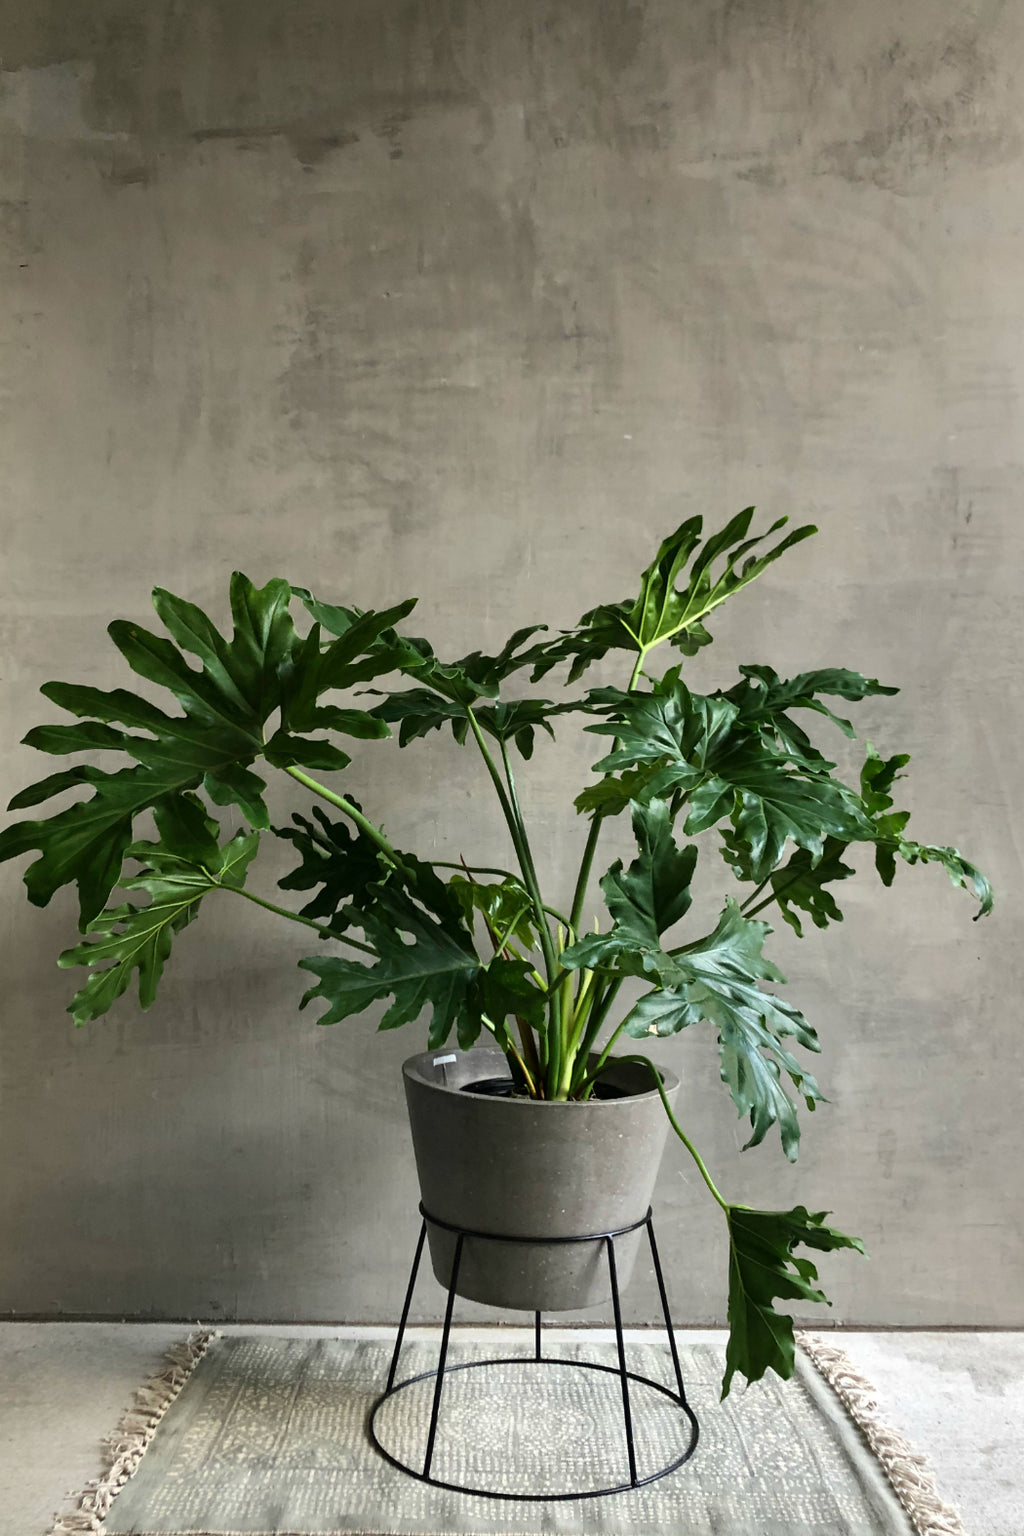 Philodendron 'Selloum'